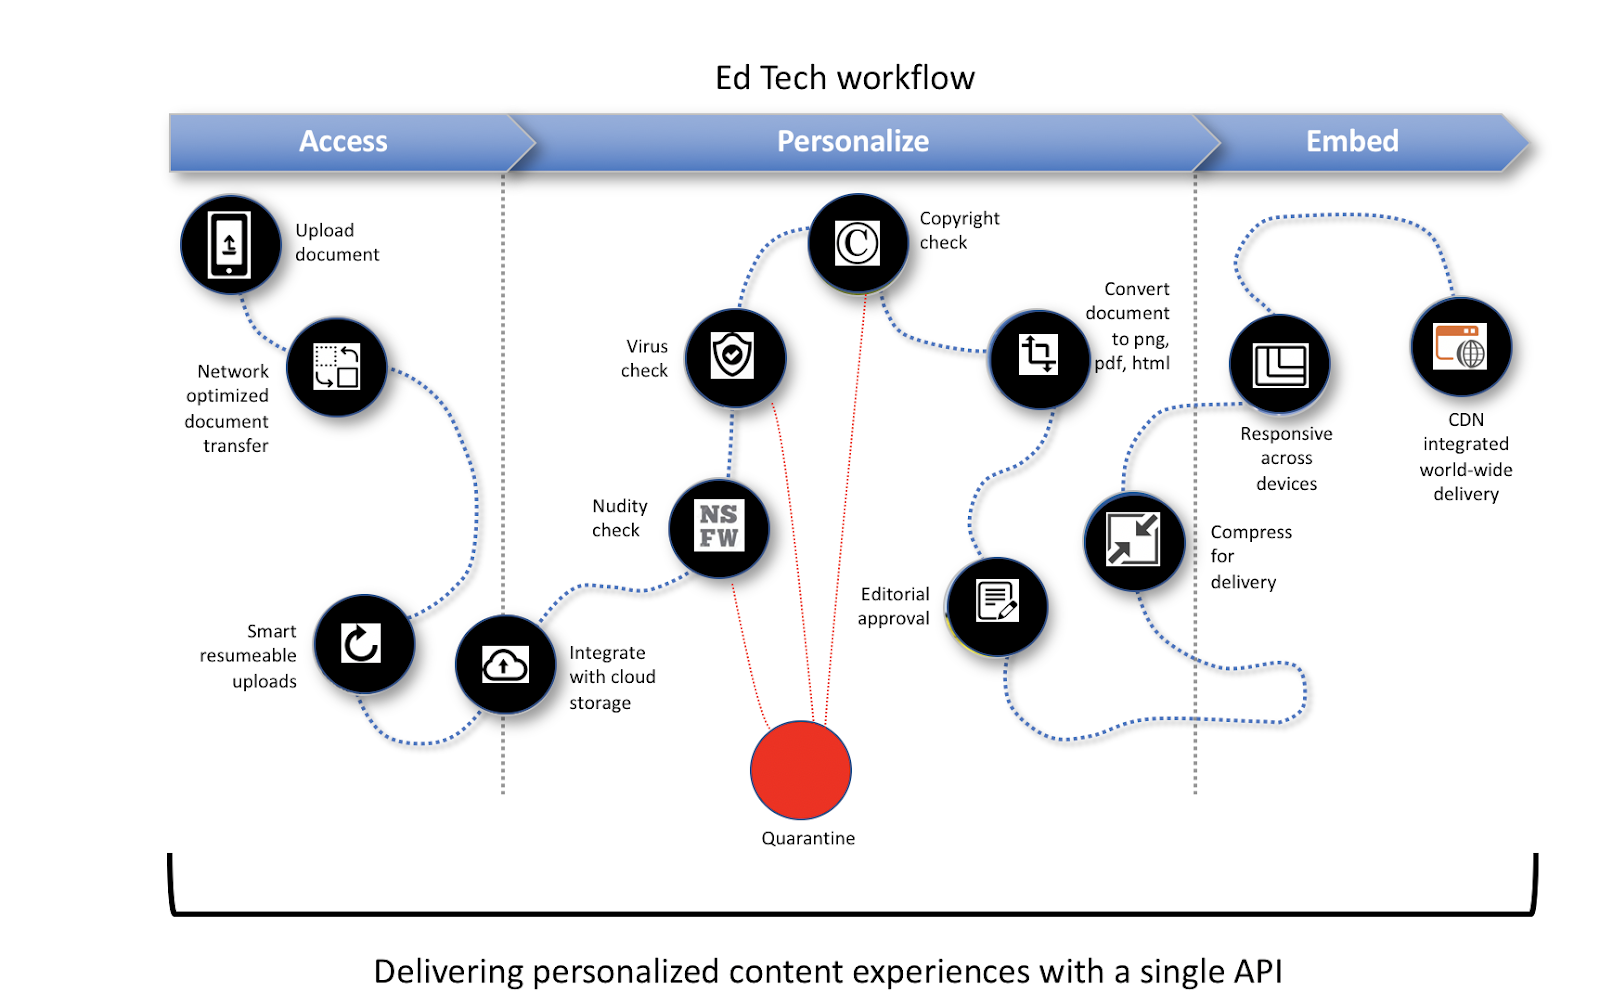 An example of an Ed Tech workflow